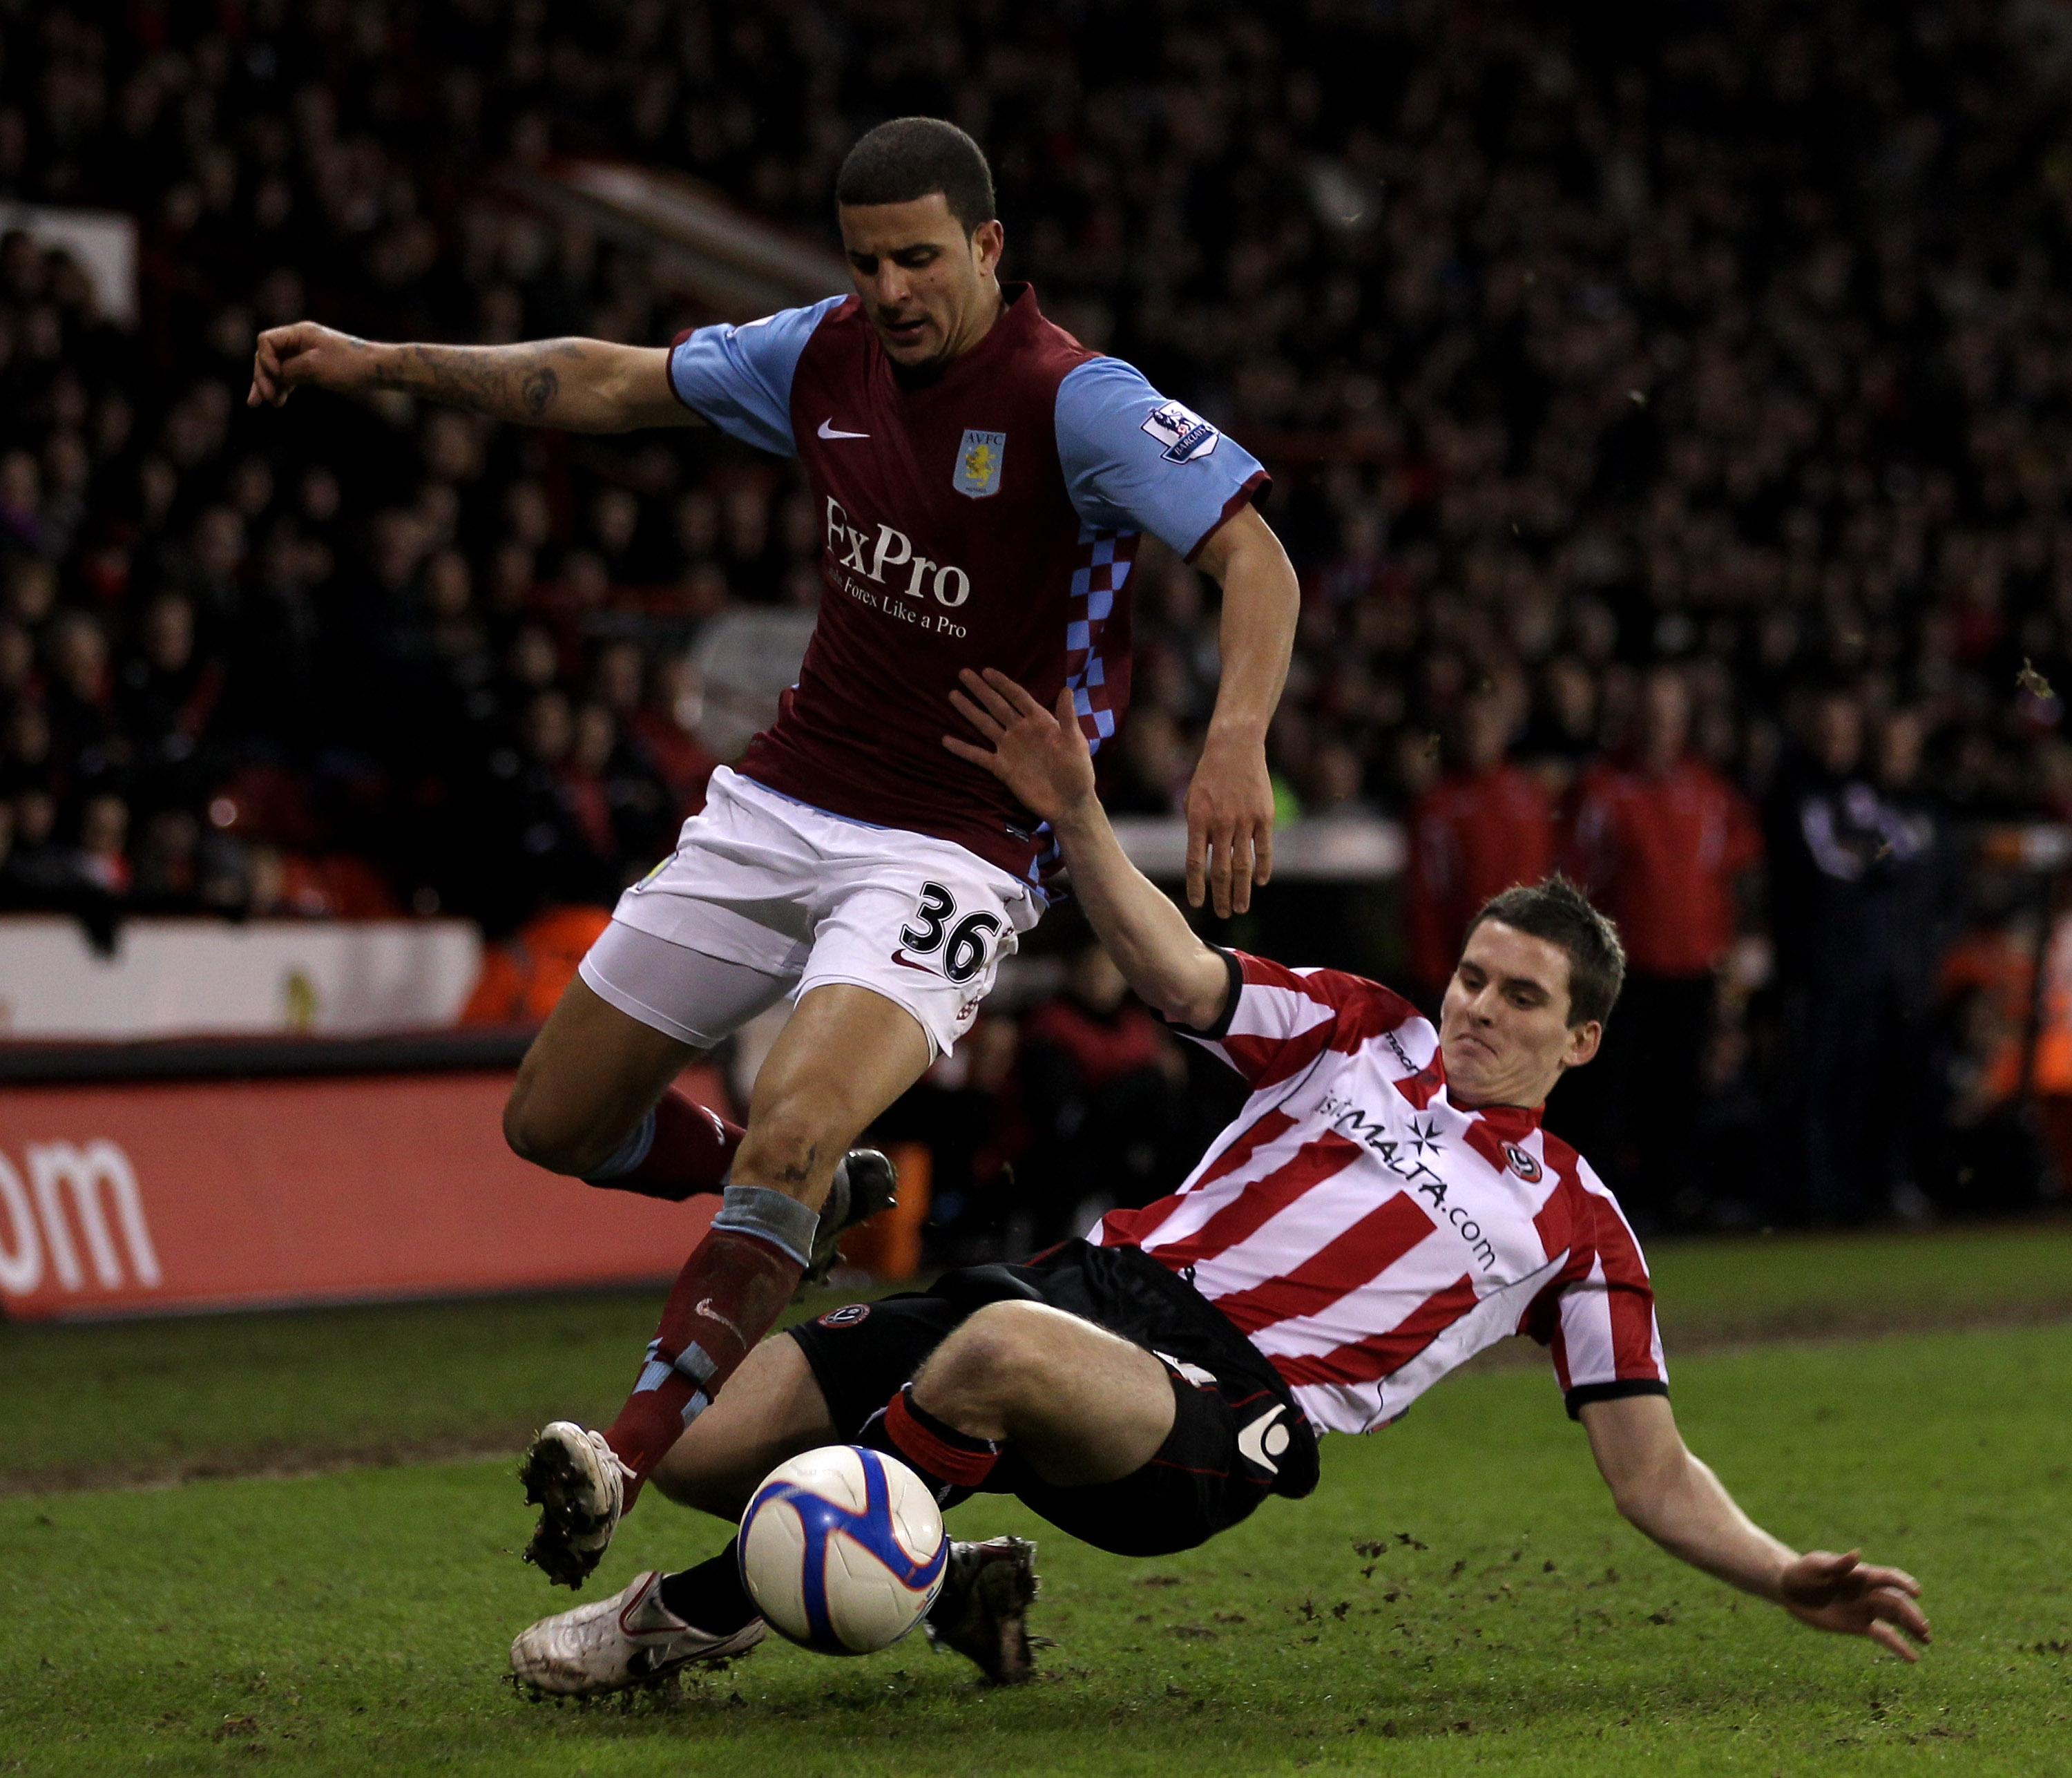 SHEFFIELD, ENGLAND - JANUARY 08:  David McAllister of Sheffield United (R) challenges Kyle Walker of Aston Villa during the FA Cup sponsored by E.ON 3rd Round match between Sheffield United and Aston Villa at Bramall Lane on January 8, 2011 in Sheffield,